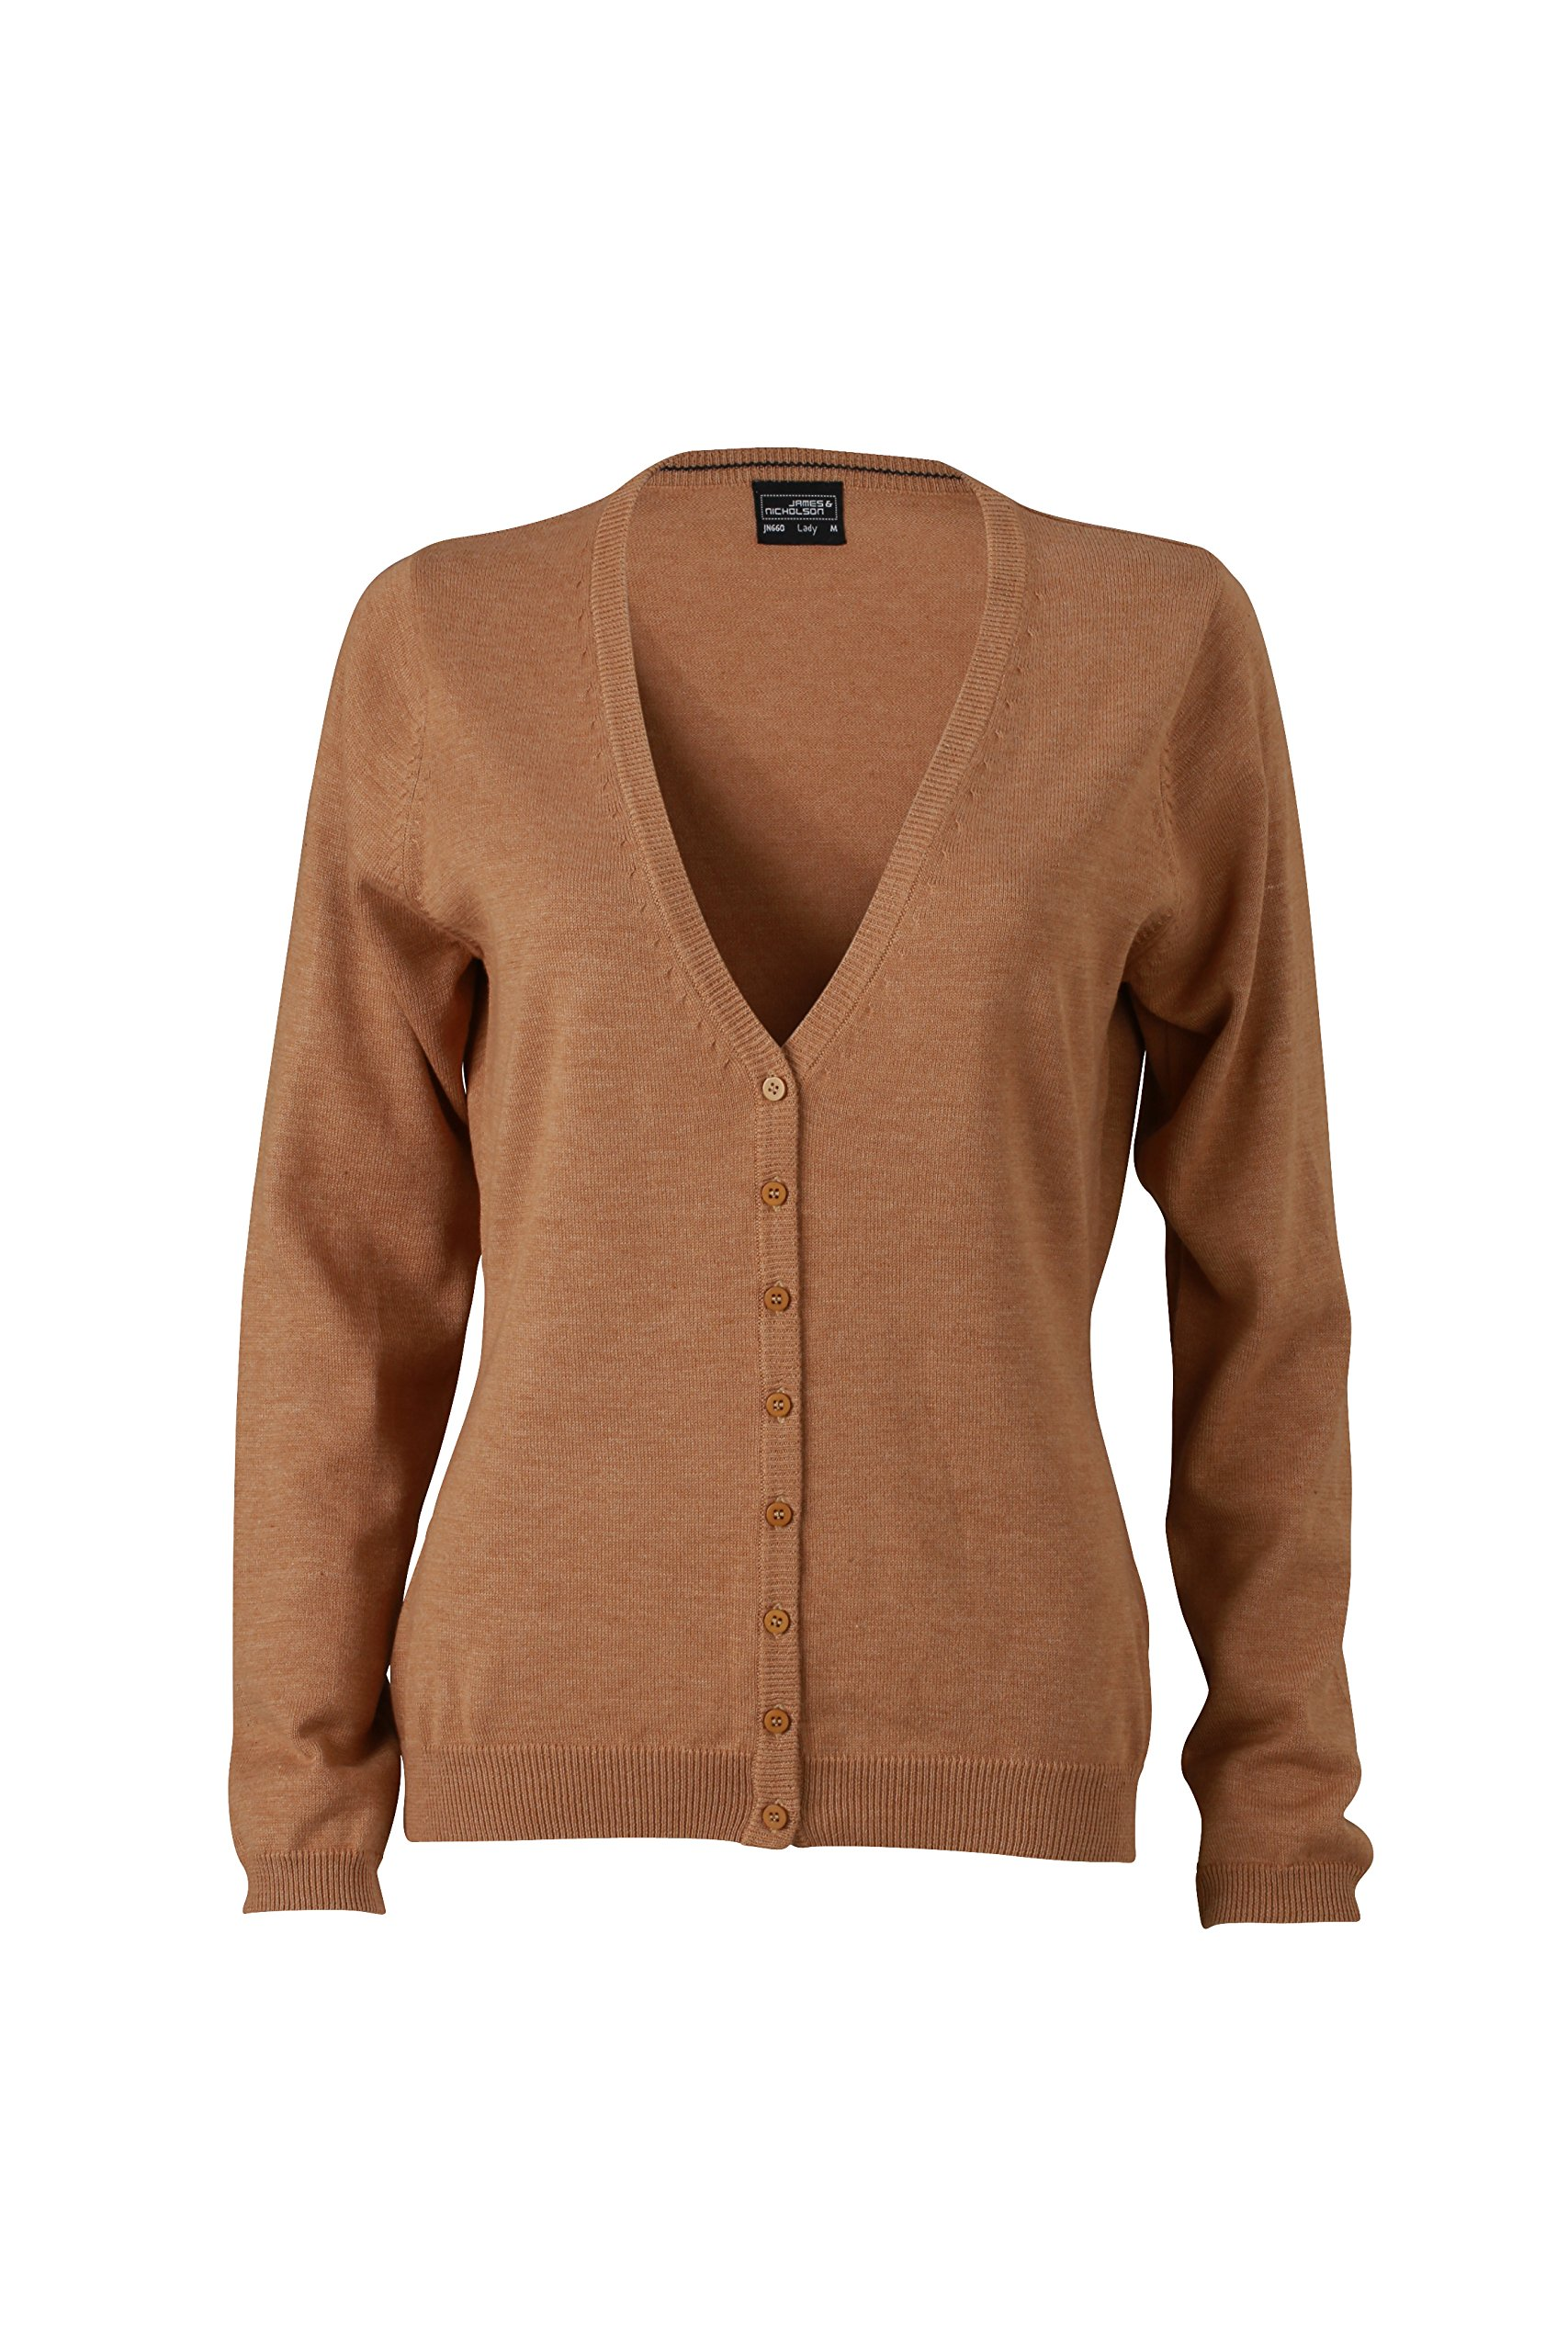 James & Nicholson Damen V-Neck Cardigan Strickjacke